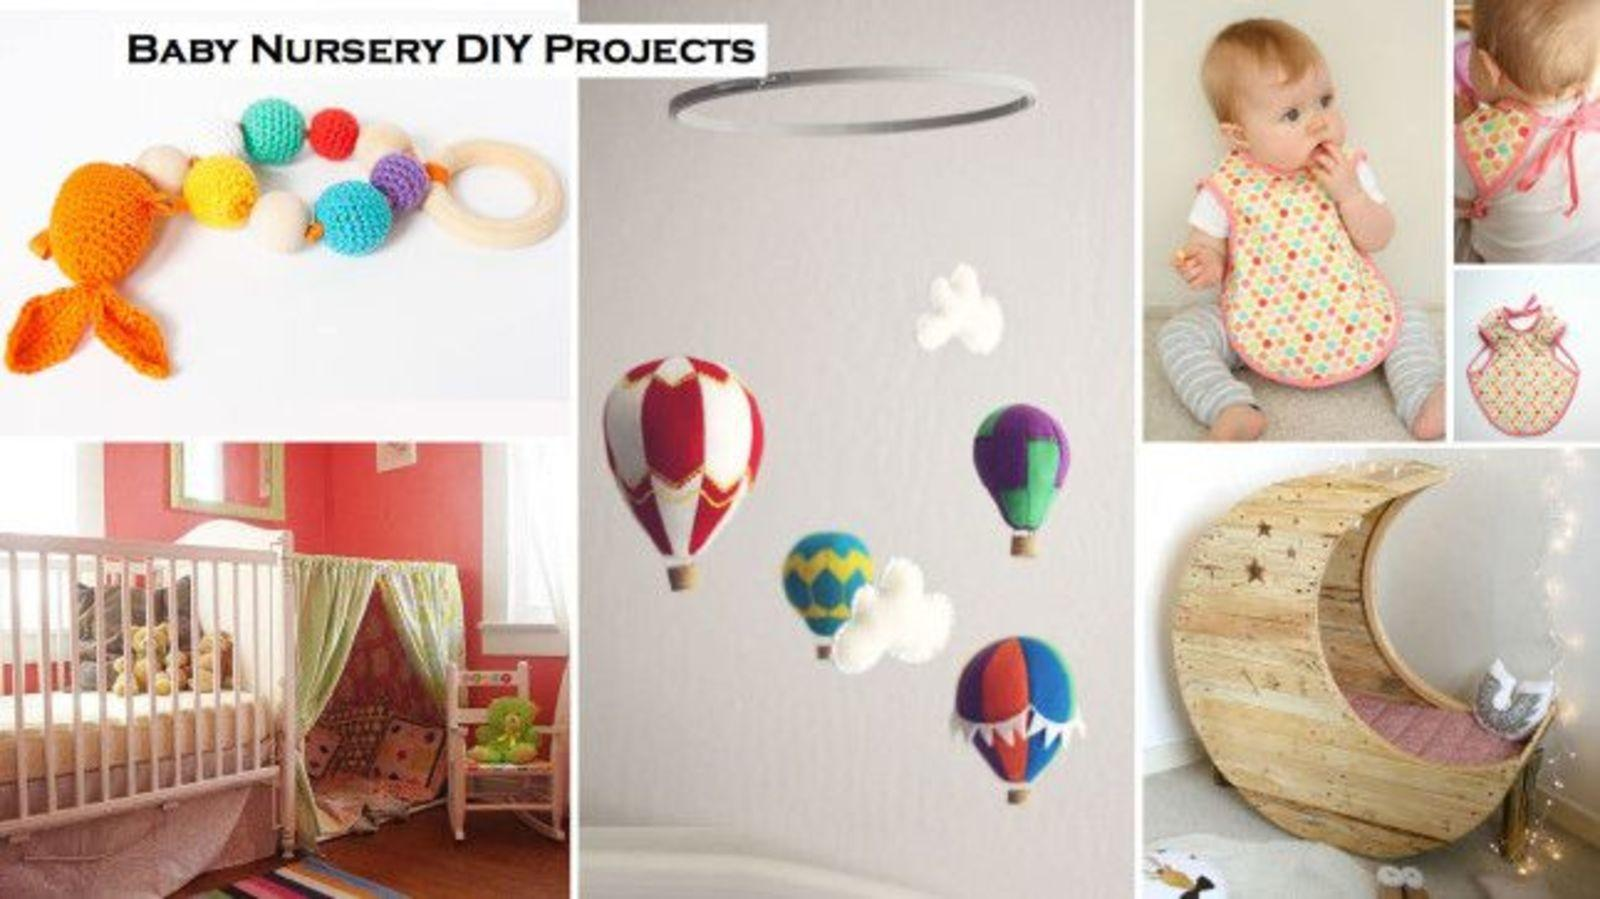 Transform your babyu0027s nursery and wardrobe with